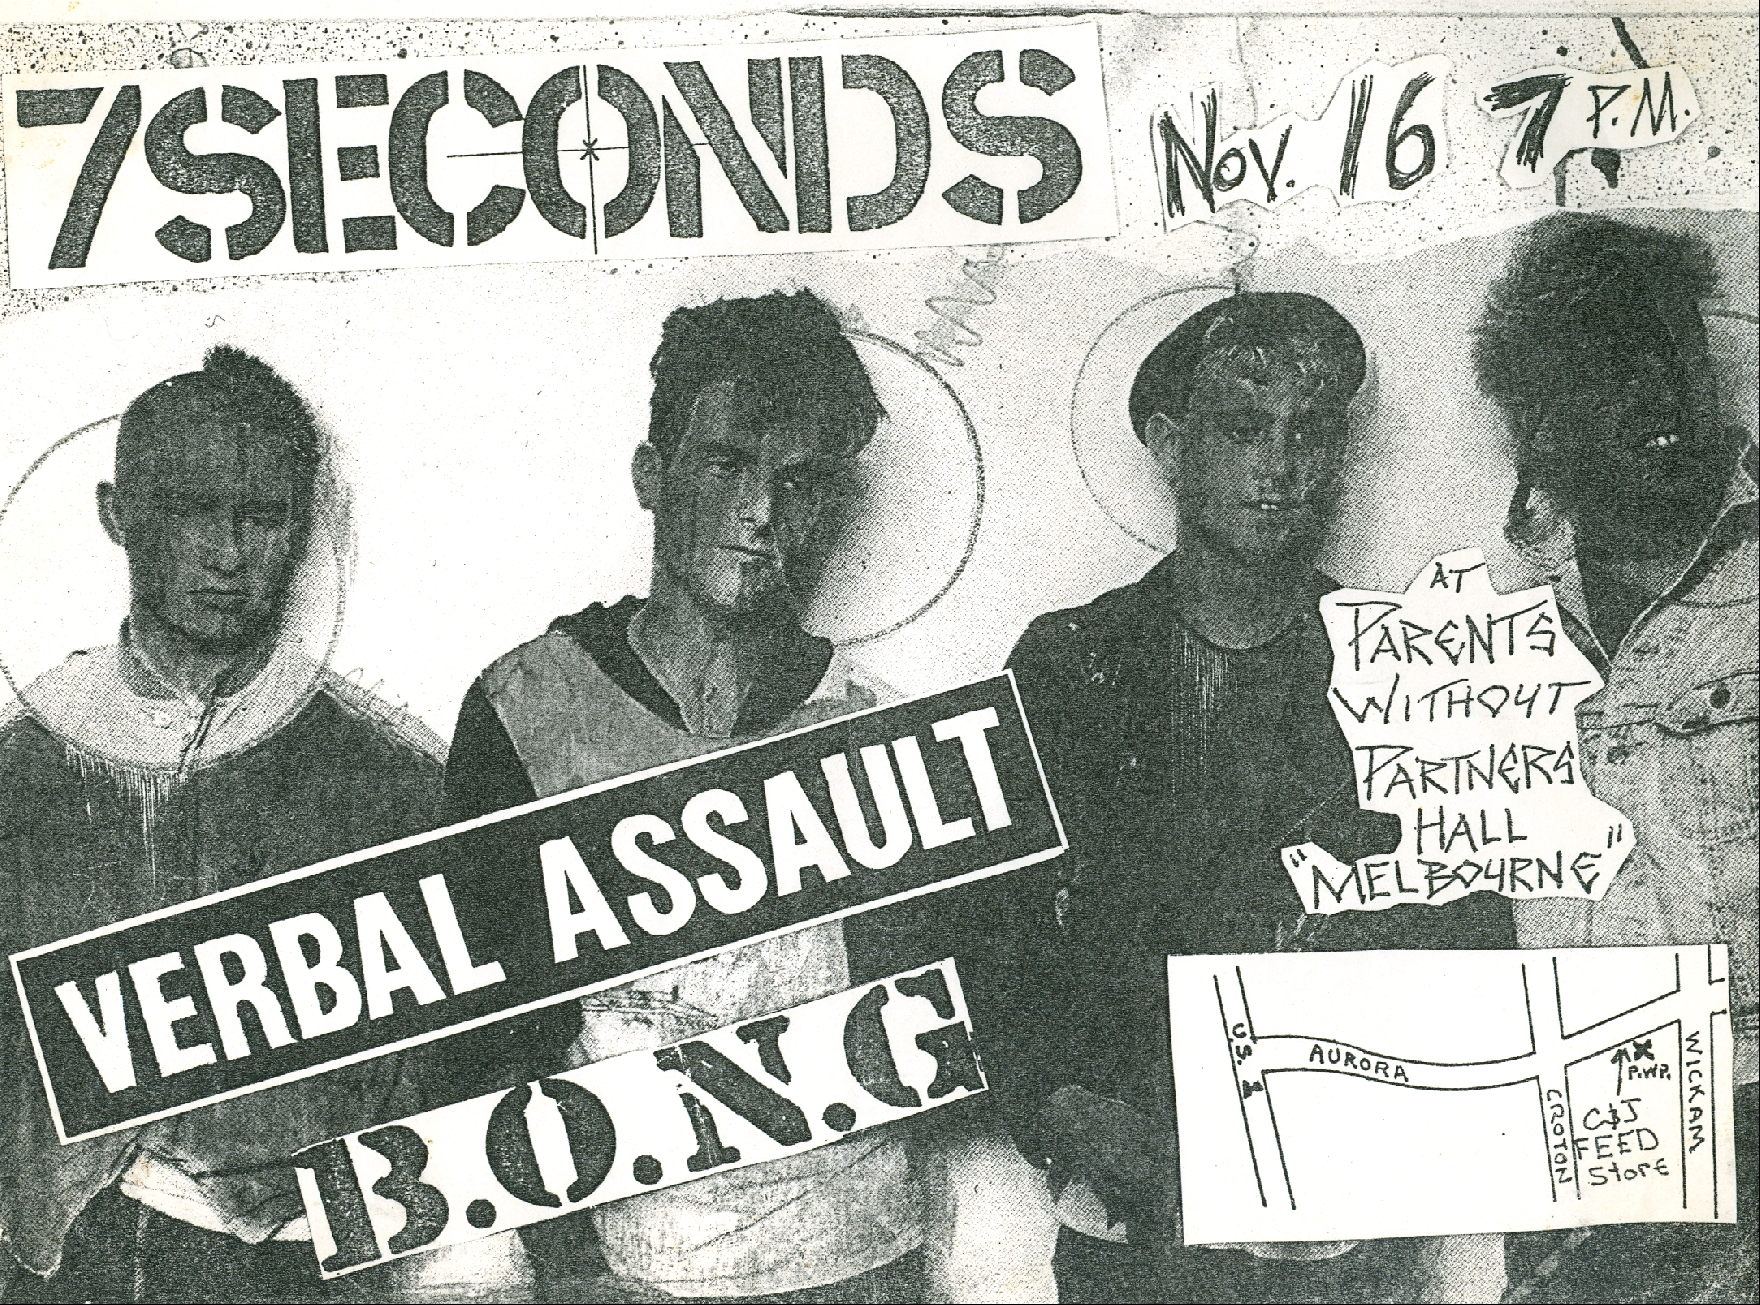 7 Seconds-Verbal Assault-Bong @ Melbourne FL 11-16-UNKNOWN YEAR